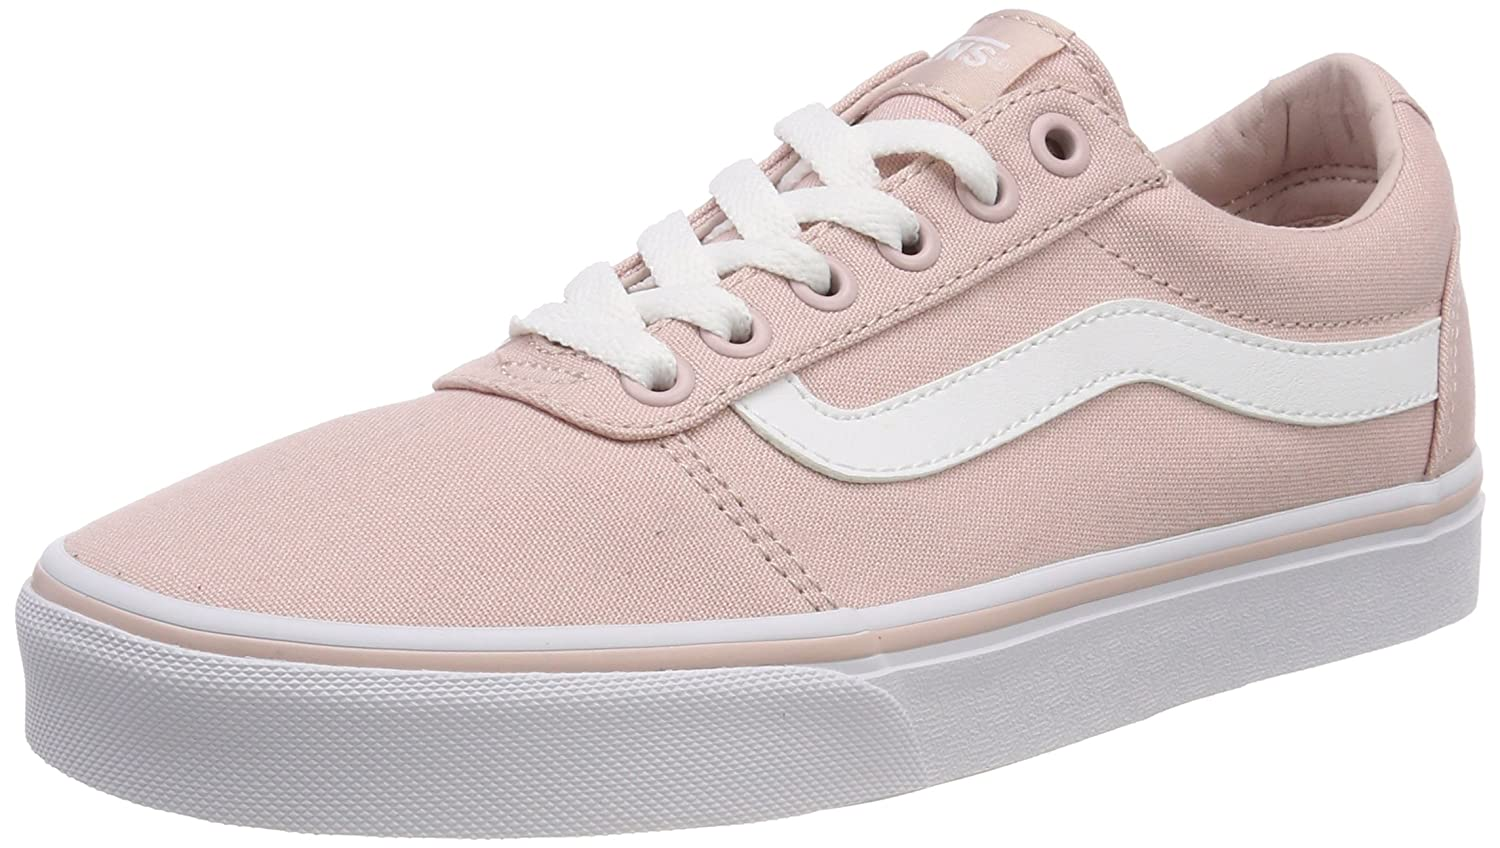 Vans Womens Ward Low Top Lace up Fashion Sneakers B079F4YRVZ 8.5 B(M) US|Sepia Rose